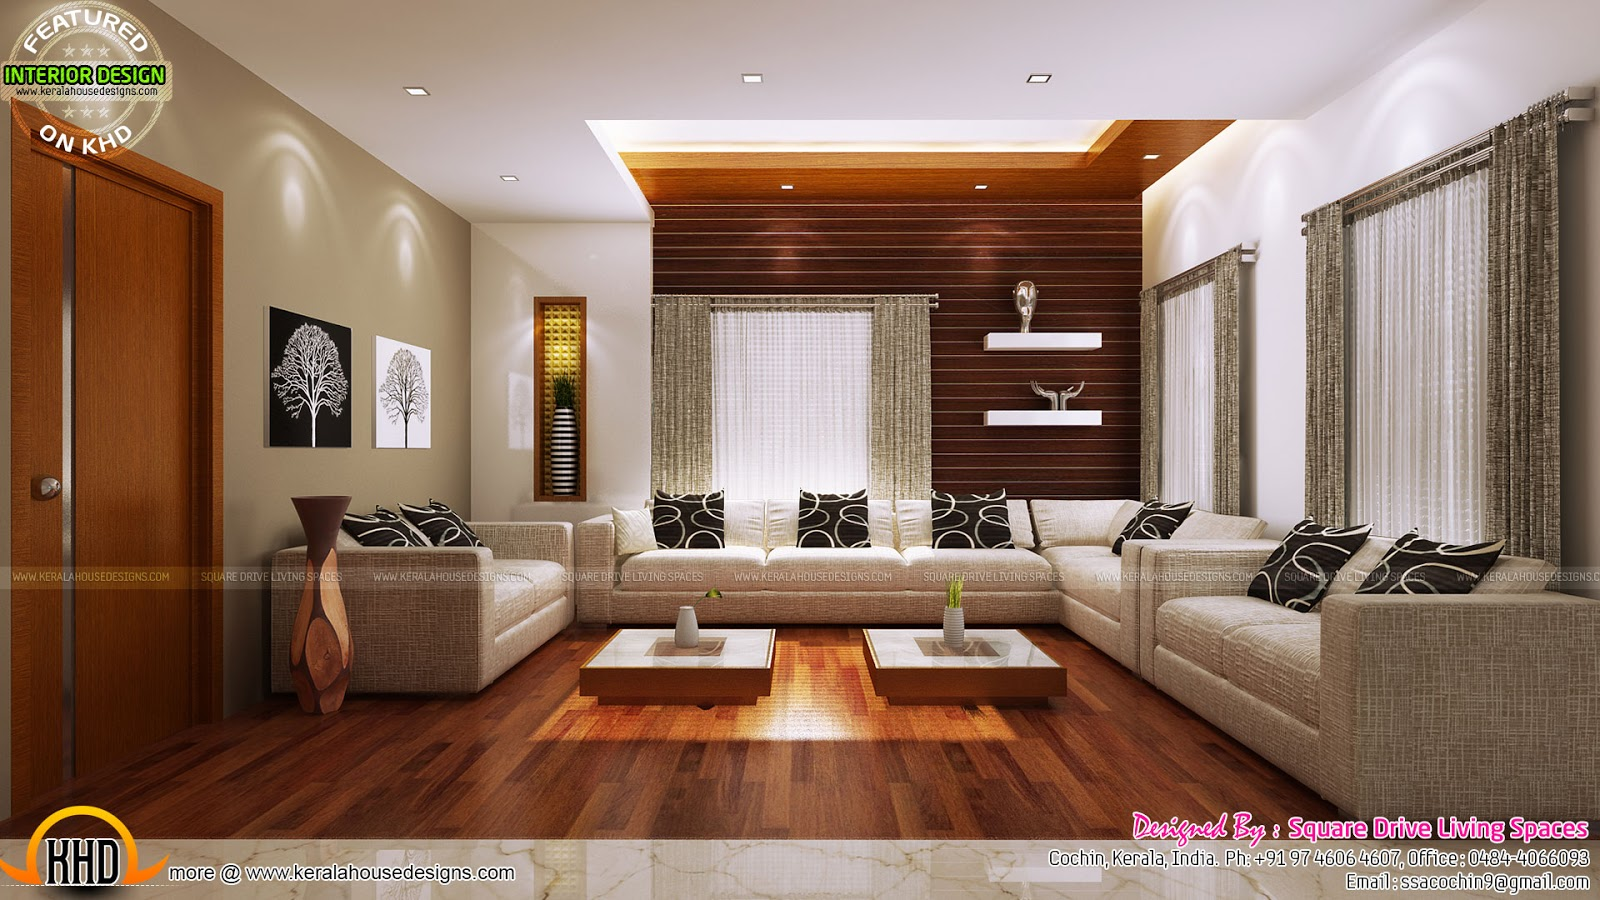 Excellent kerala interior design kerala home design and - House interior design ideas pictures ...